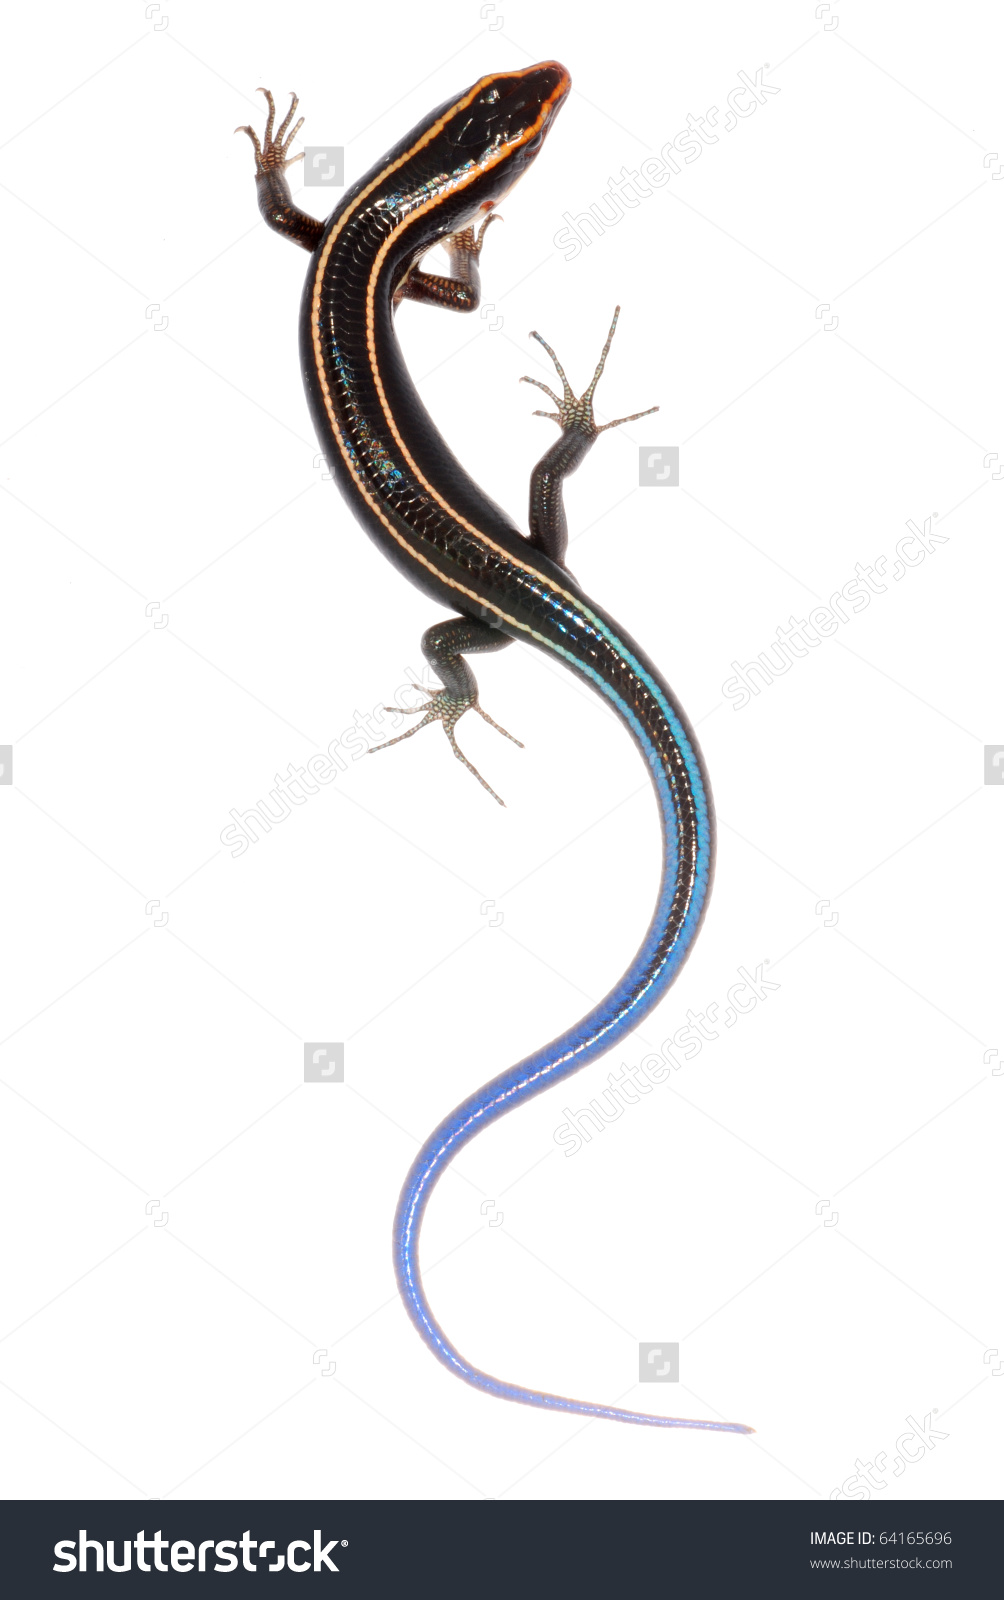 Blue Tailed Skink Lizard Clip Art.